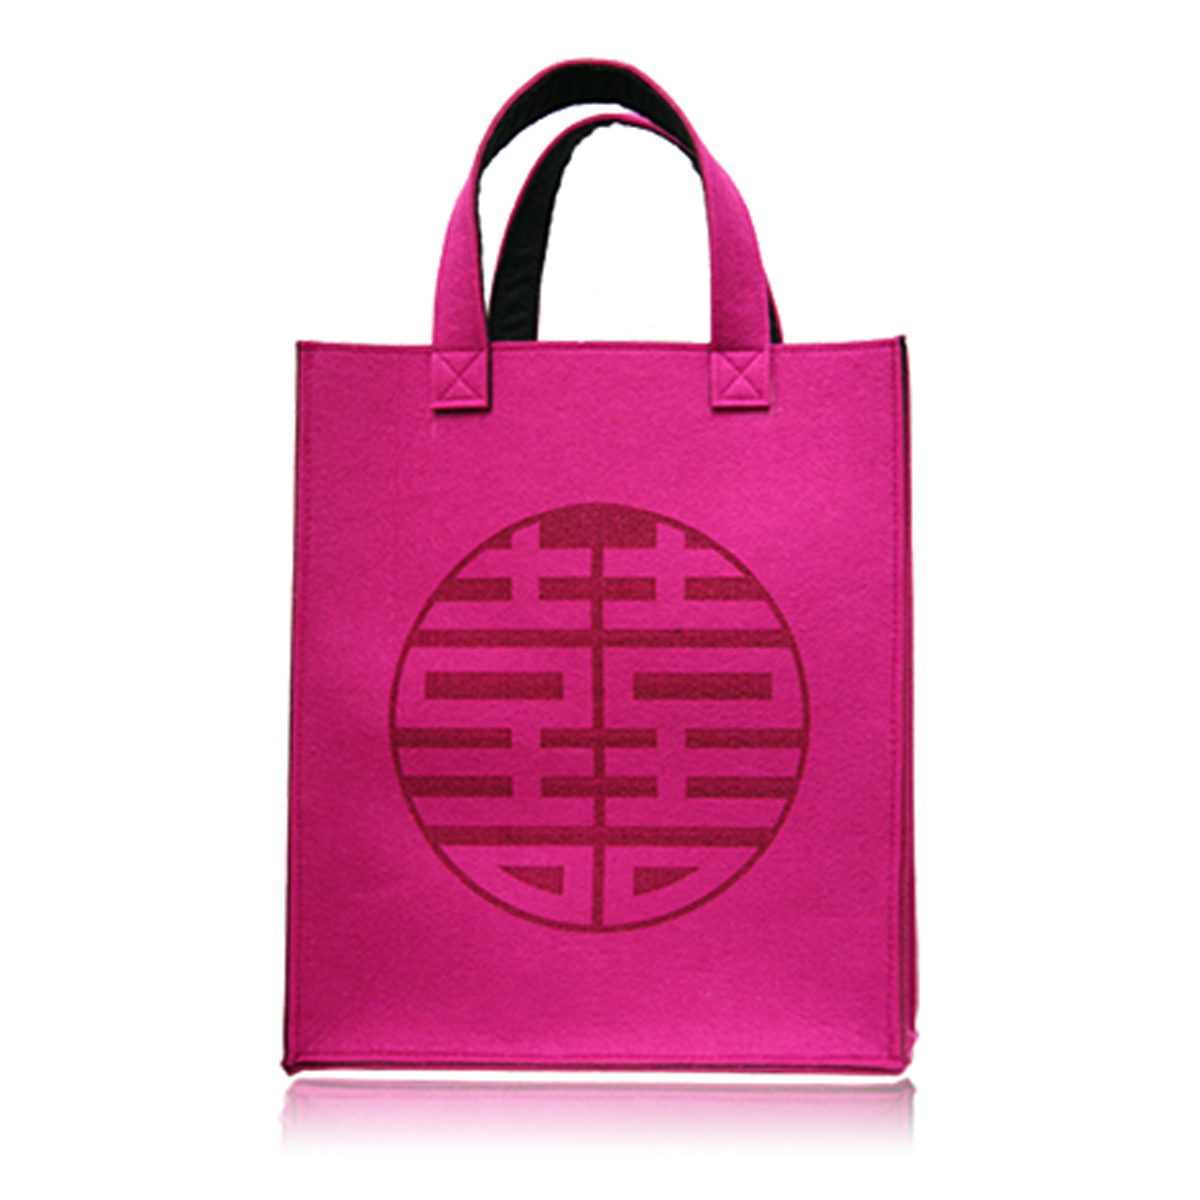 China Double Happiness Bag, China Double Happiness Bag Shopping ...